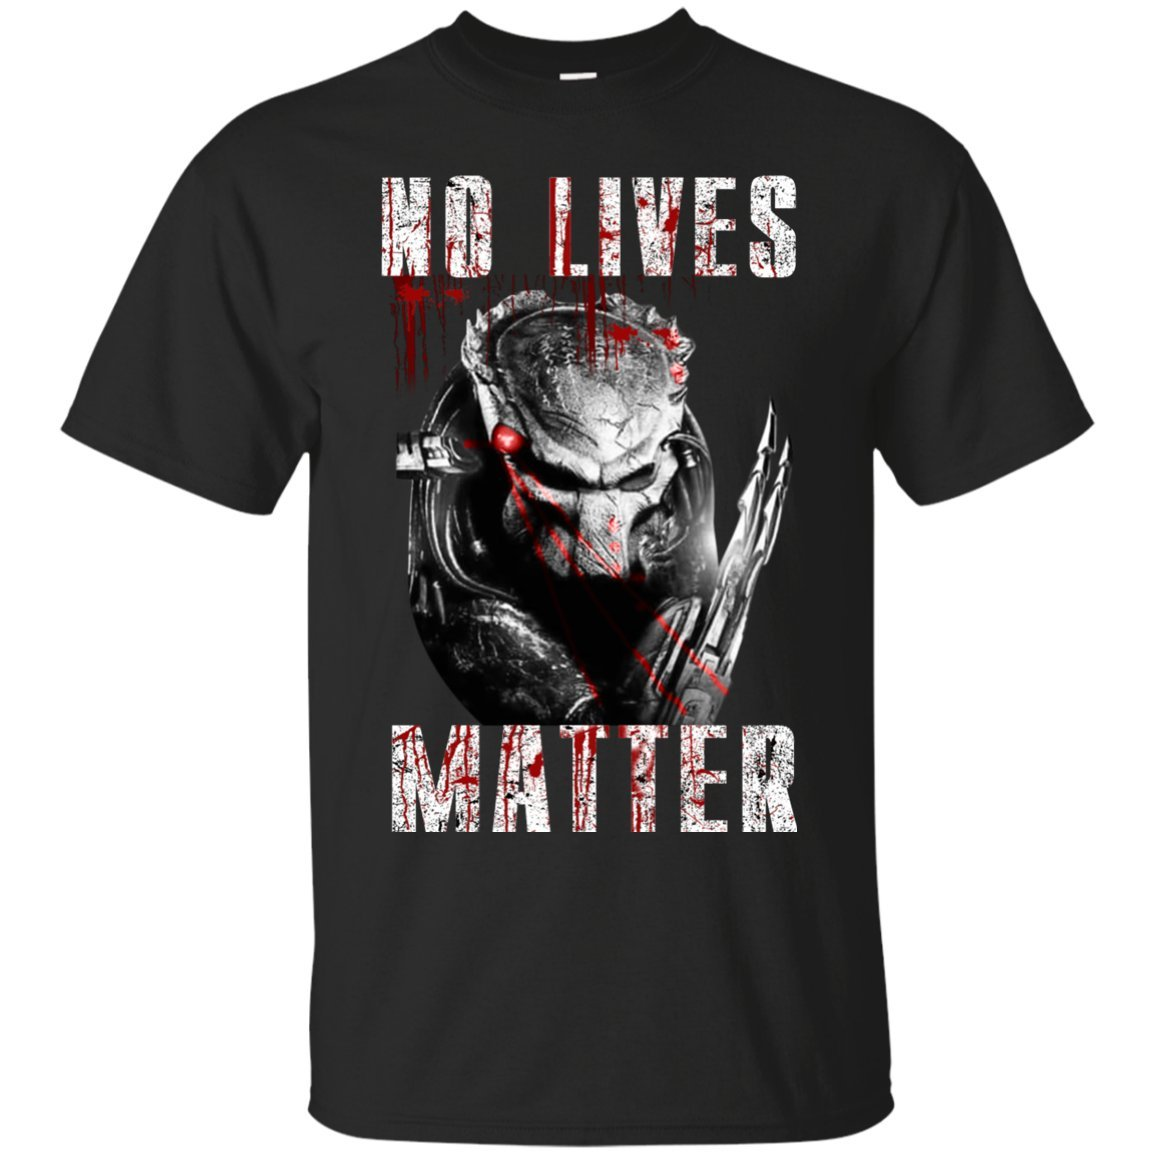 Novelty Gifts T-Shirt Alien Vs Predator All Lives Matter Perfect for Kids, Friends, youngbrother, Brother, Boyfriend